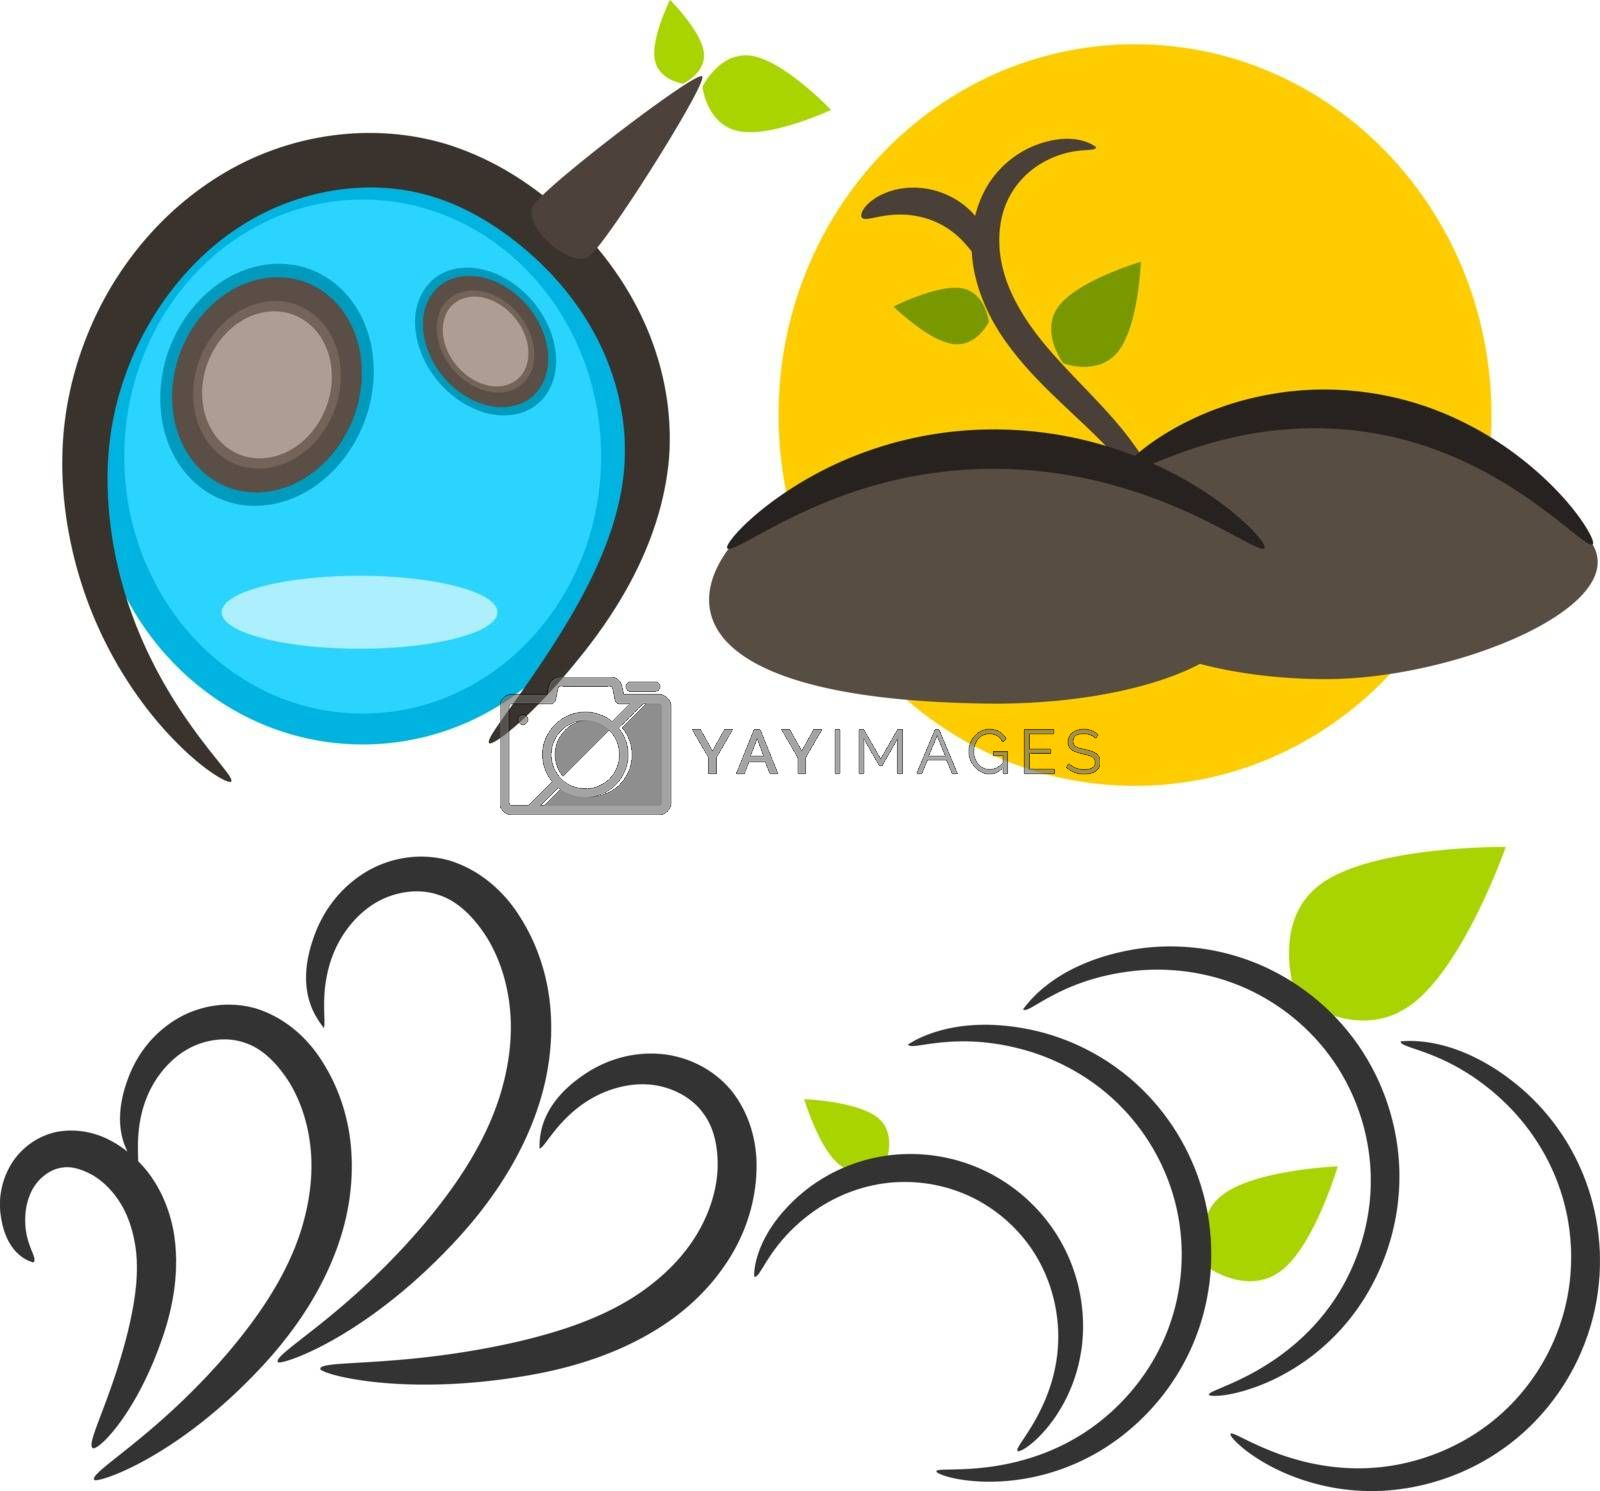 Nature tree symbol in ecology world concept illustration